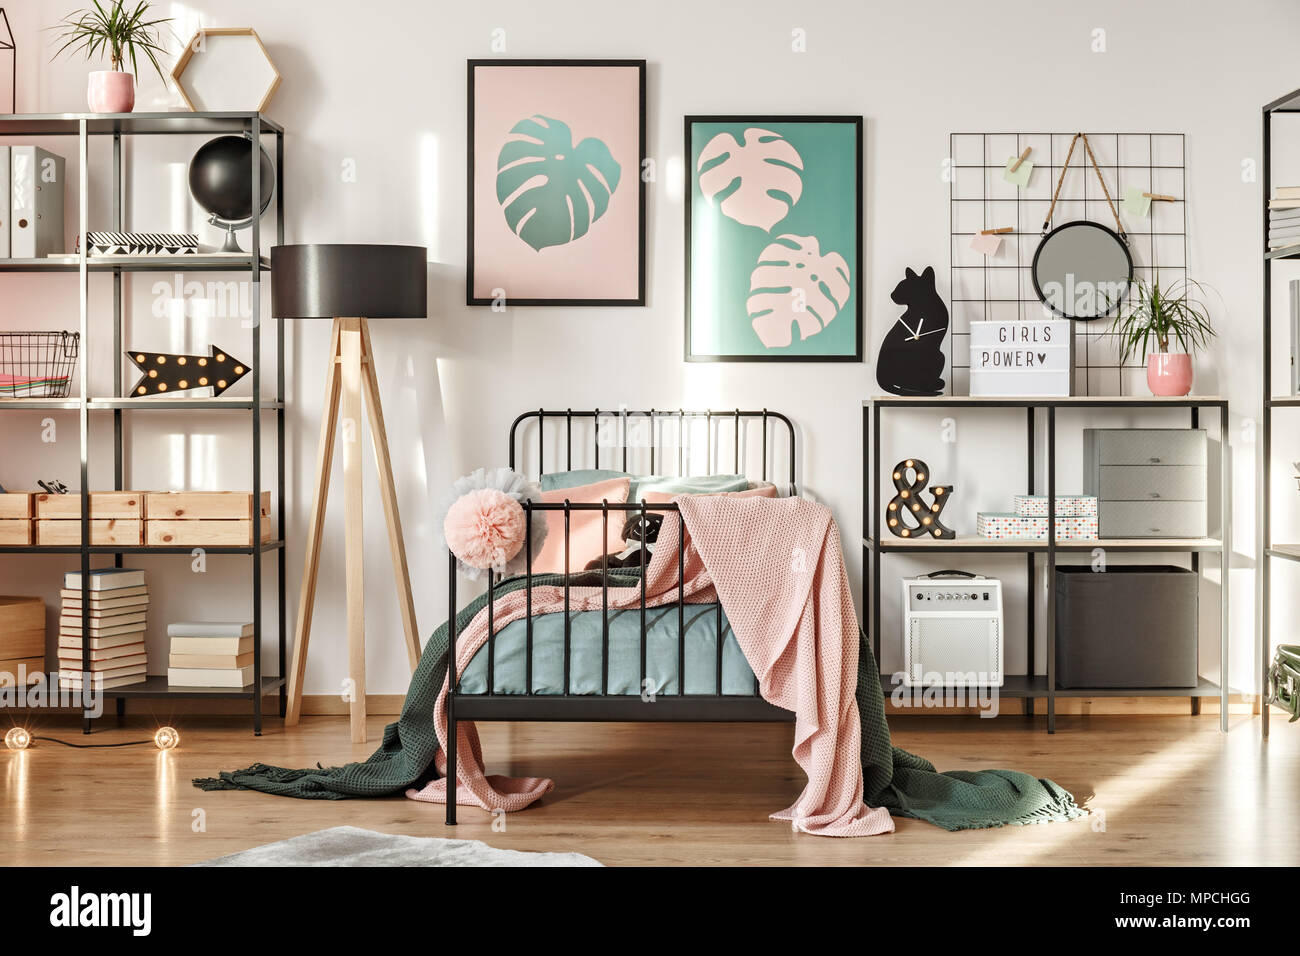 Metal shelves with decorations, botanical posters and comfy bed in a girl bedroom interior - Stock Image